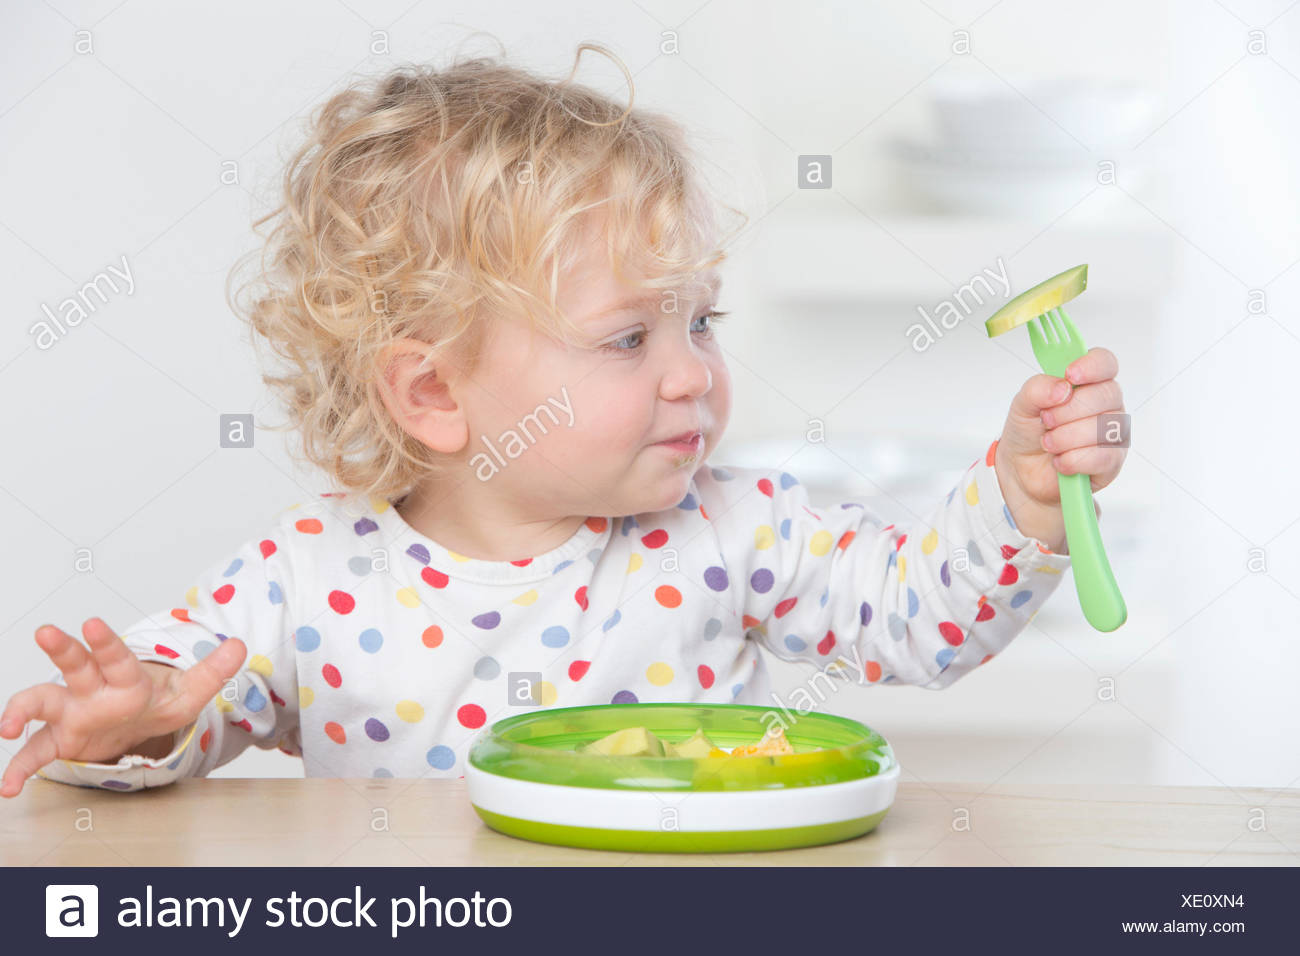 Curious baby eating avocado with fork - Stock Image